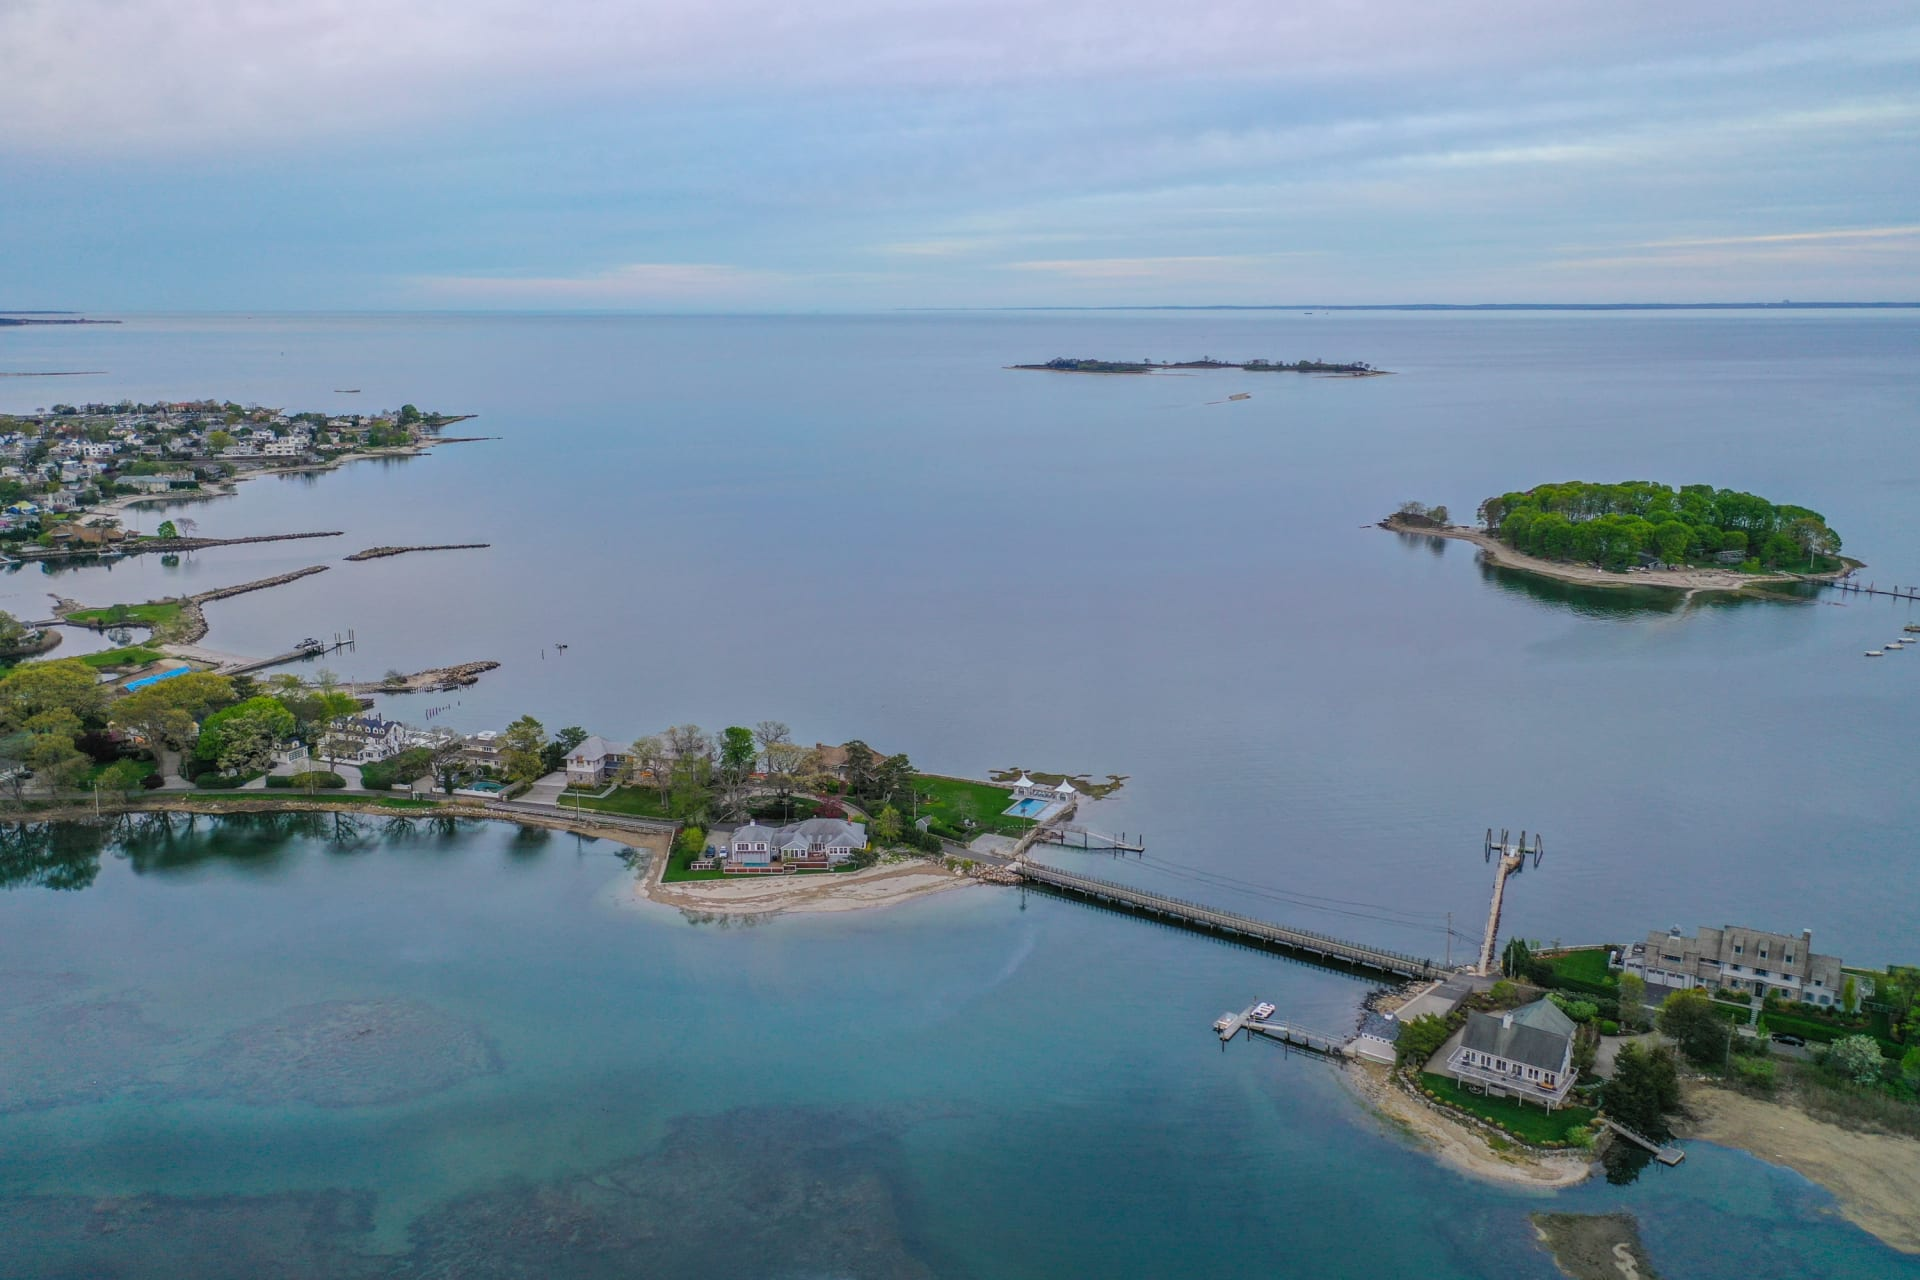 Gold Coast Waterfront Series Part 5: Best Private Fairfield County Private Association Homes with Members-Only Beaches and Docks